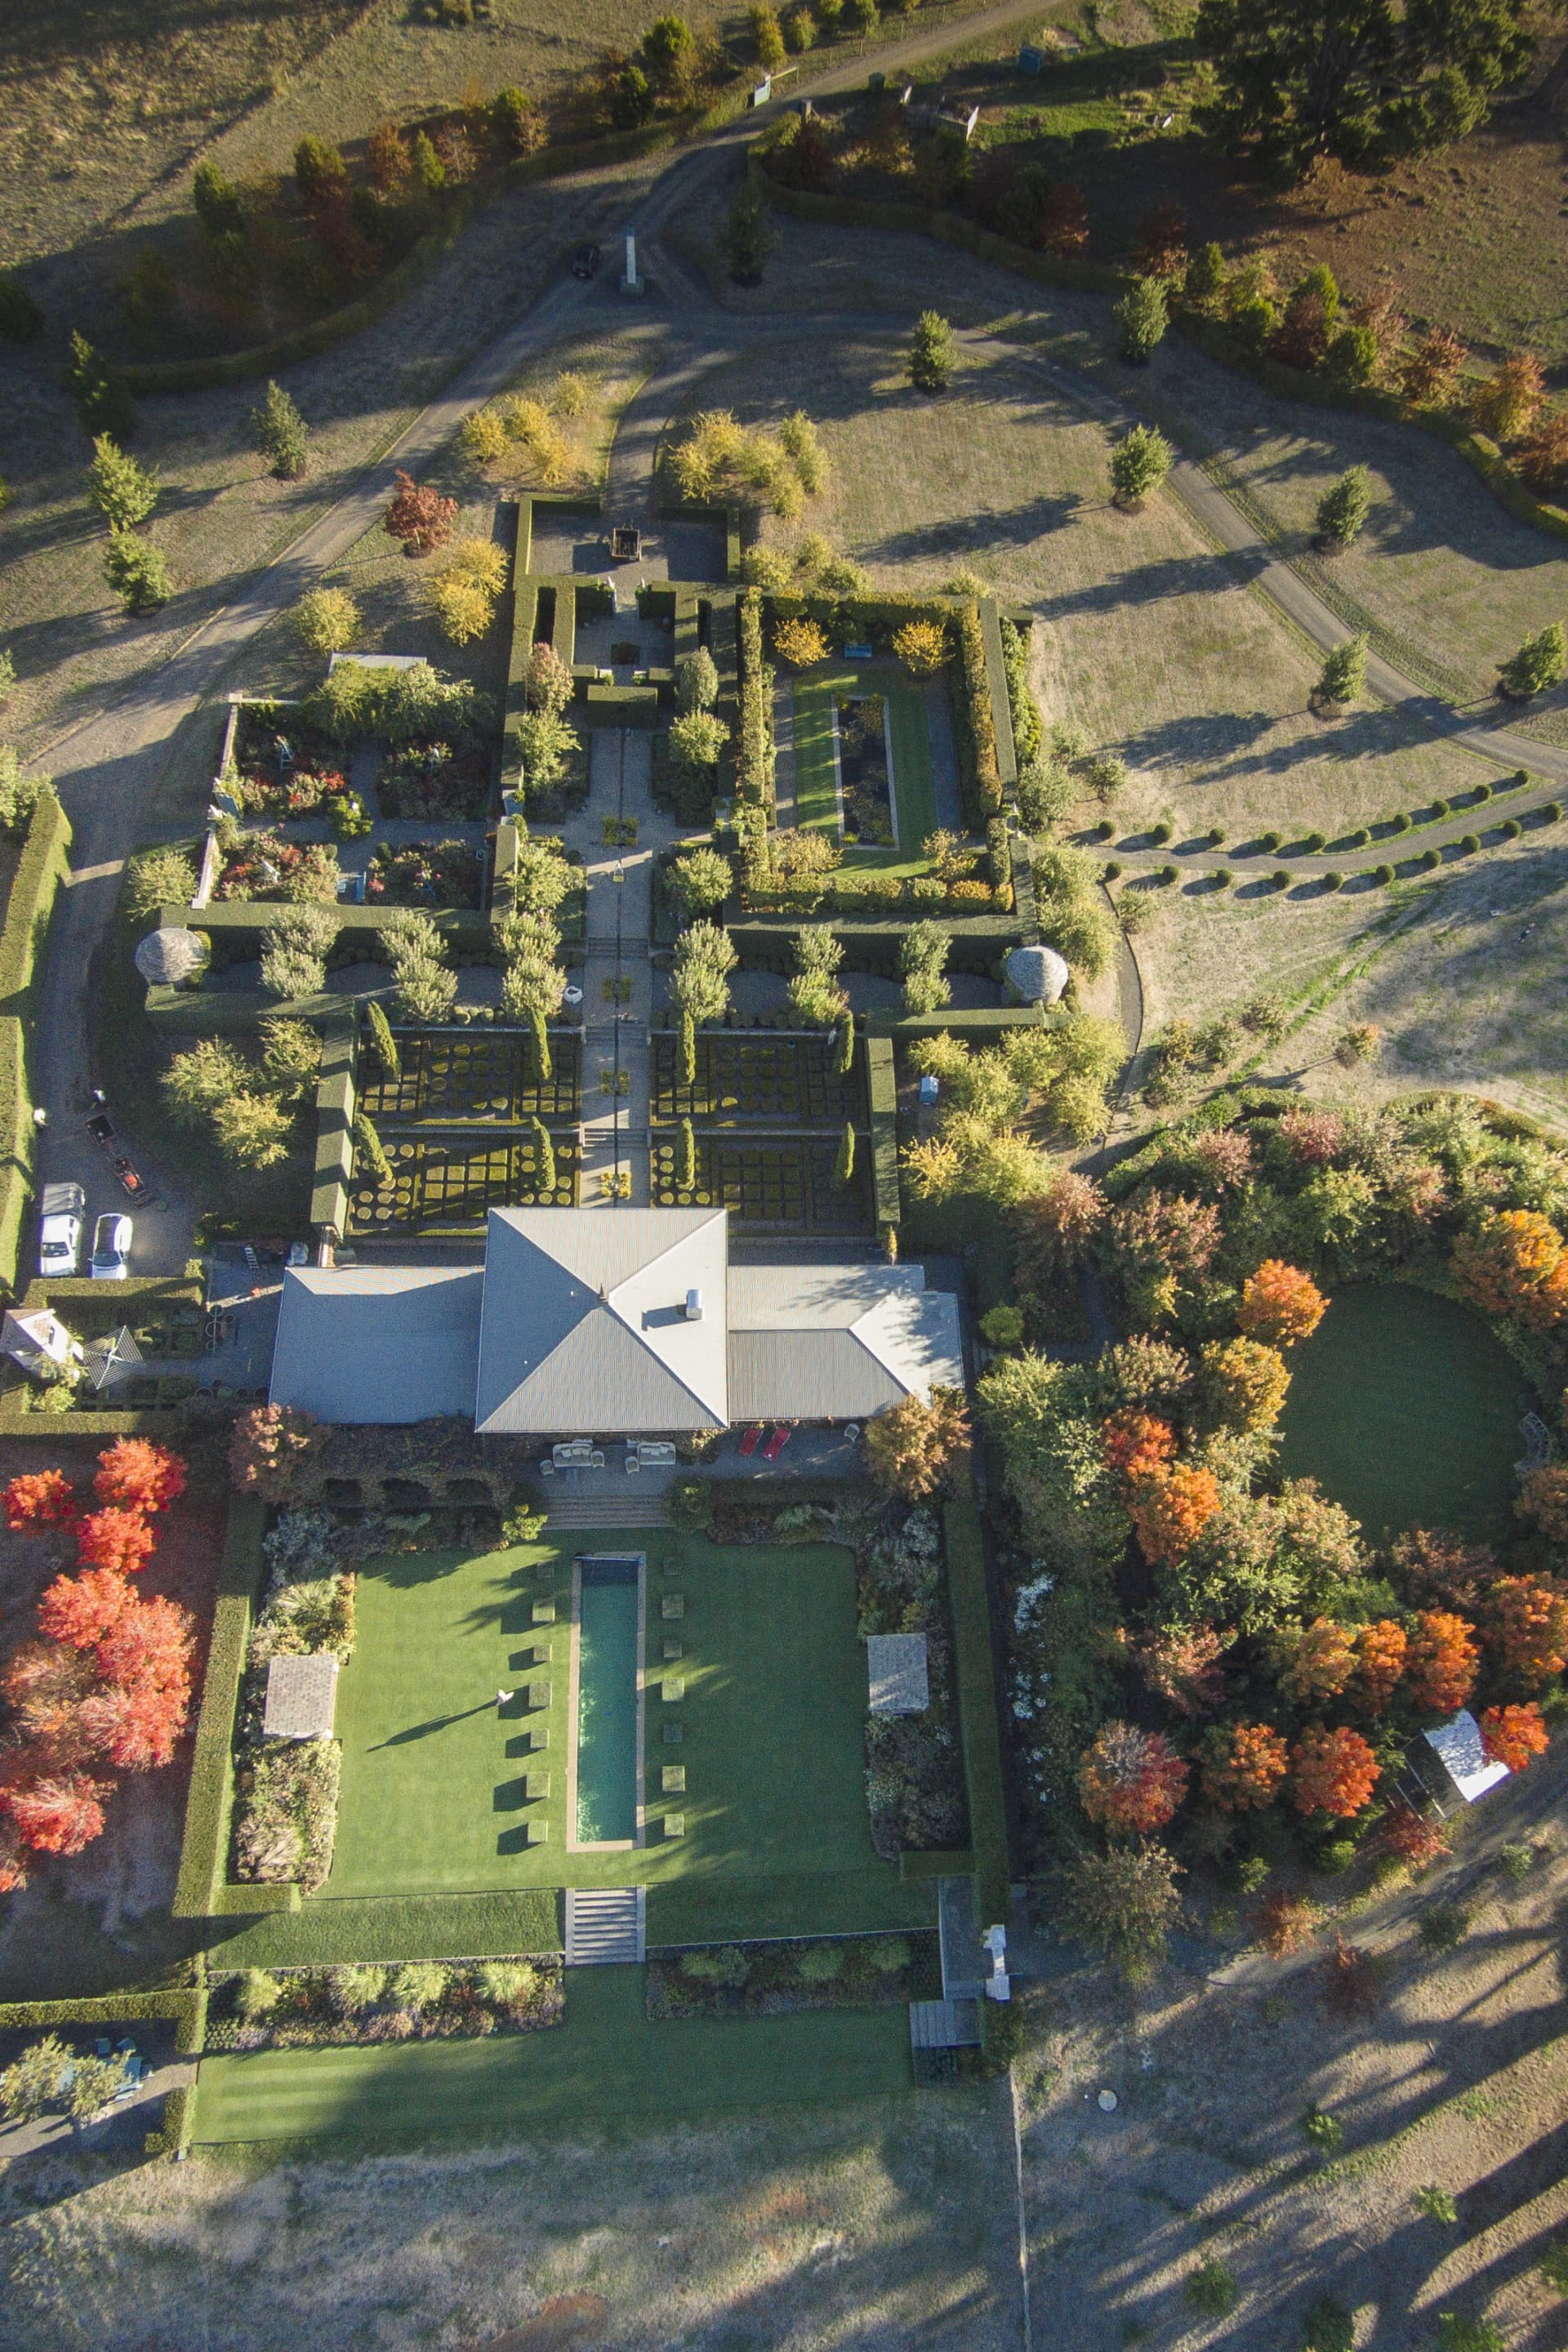 From the air, it's easy to see the way the garden has been divided into rooms and how the circular woodland garden is coloring up in autumn. Each year the garden gets a little bigger, it is a work in progress.